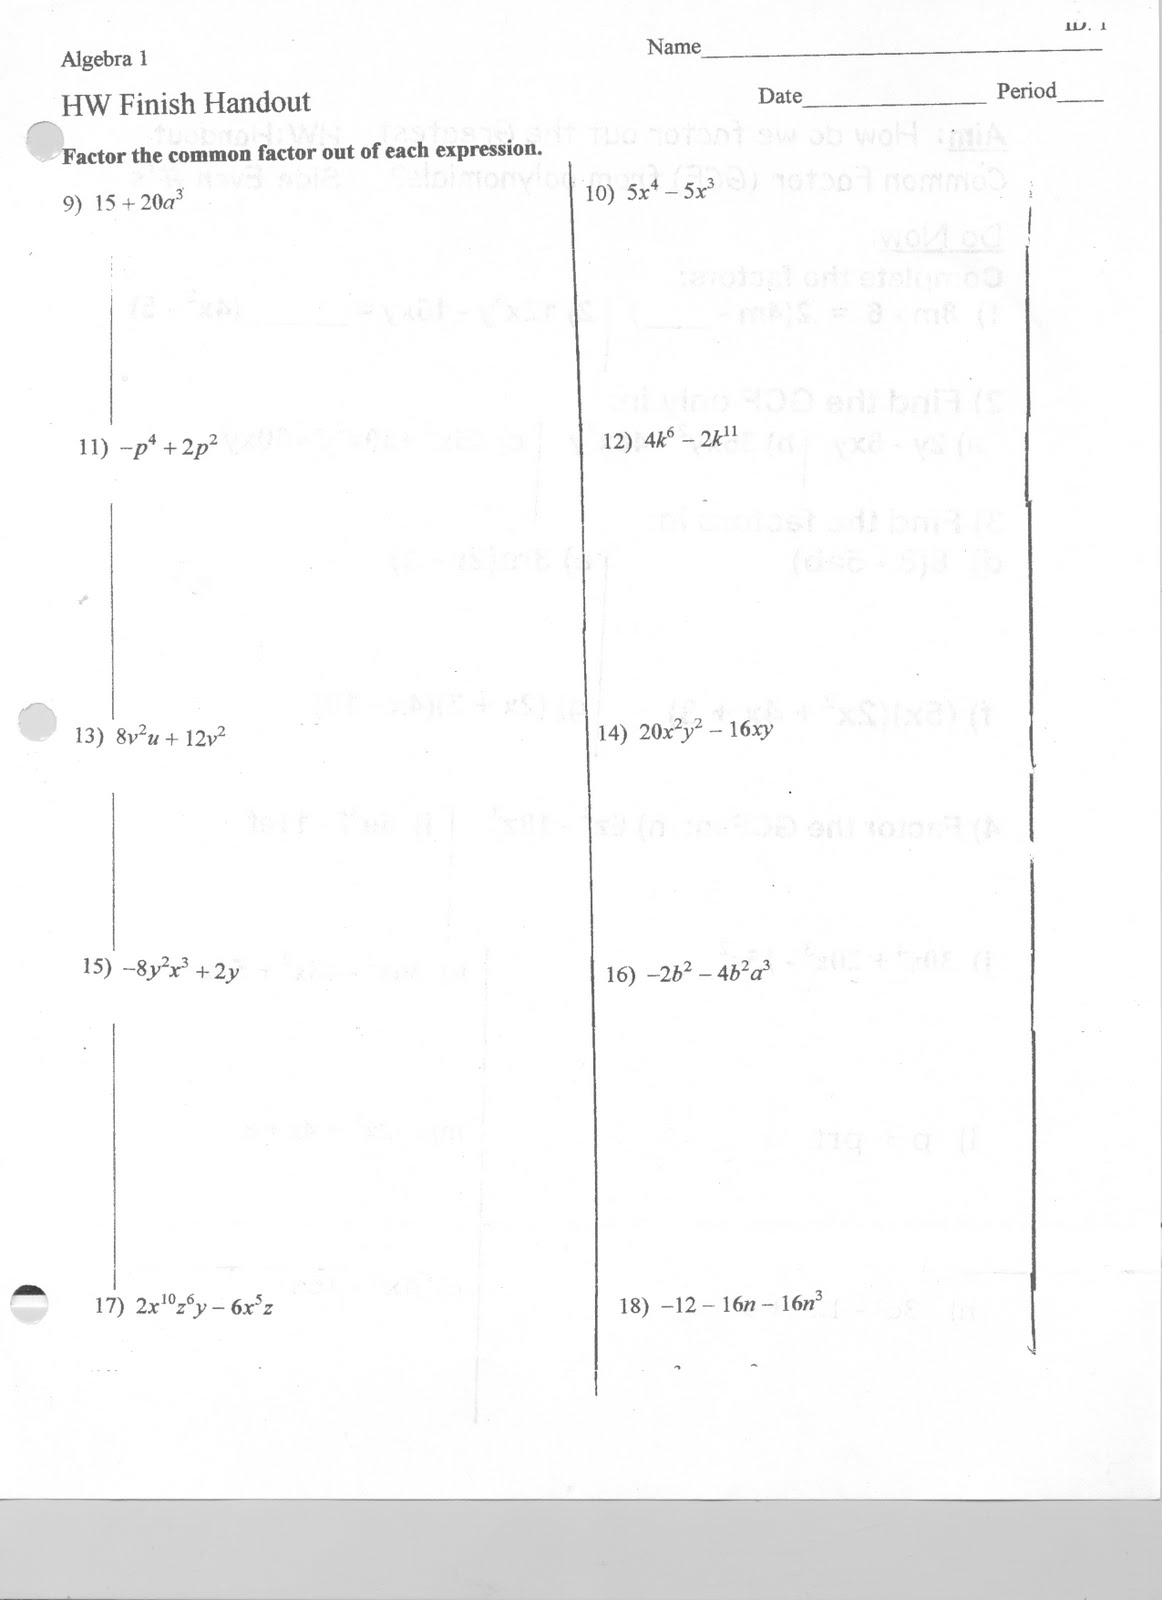 Factoring Difference Of Two Squares Worksheet - Davezan